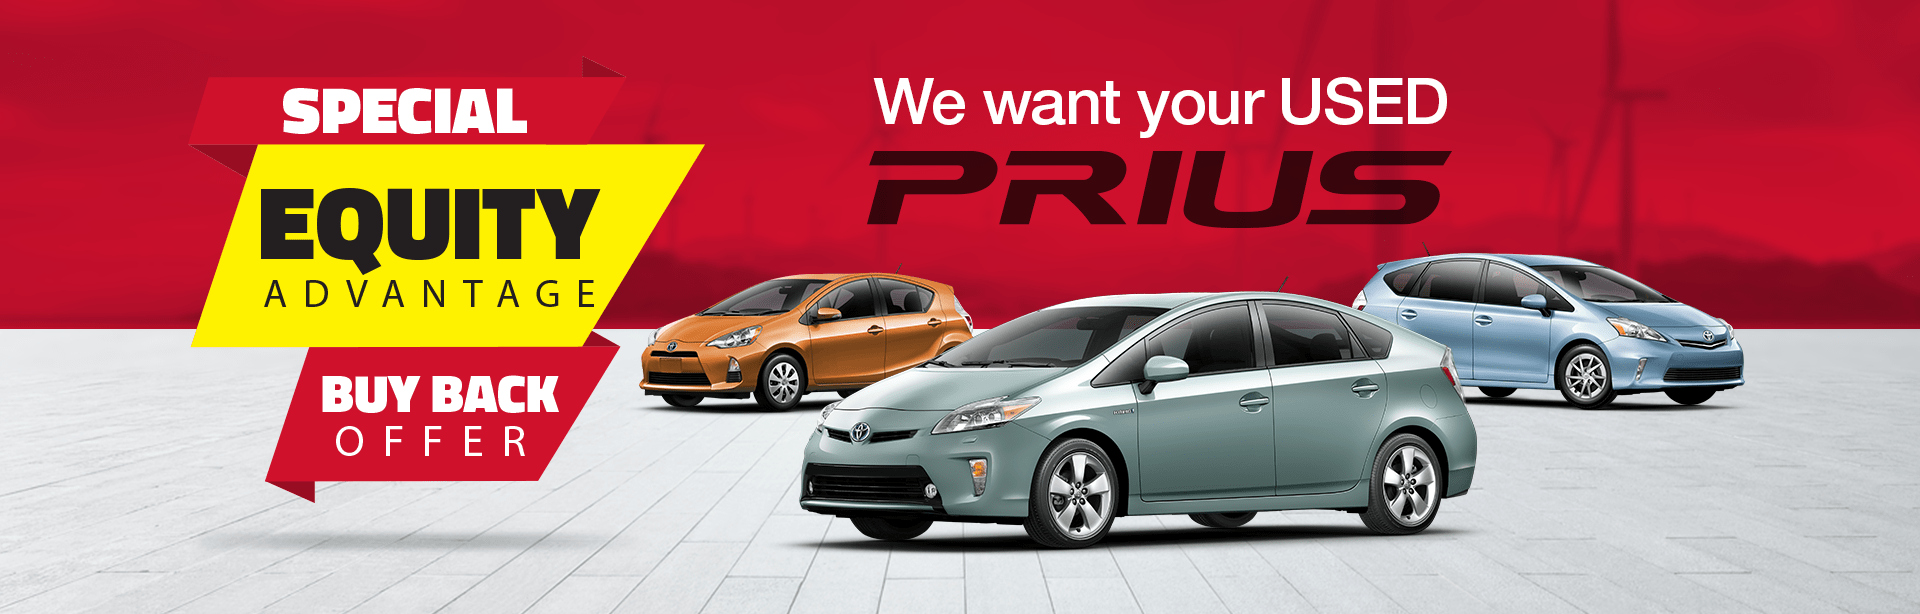 We Want to Buy Your Used Prius